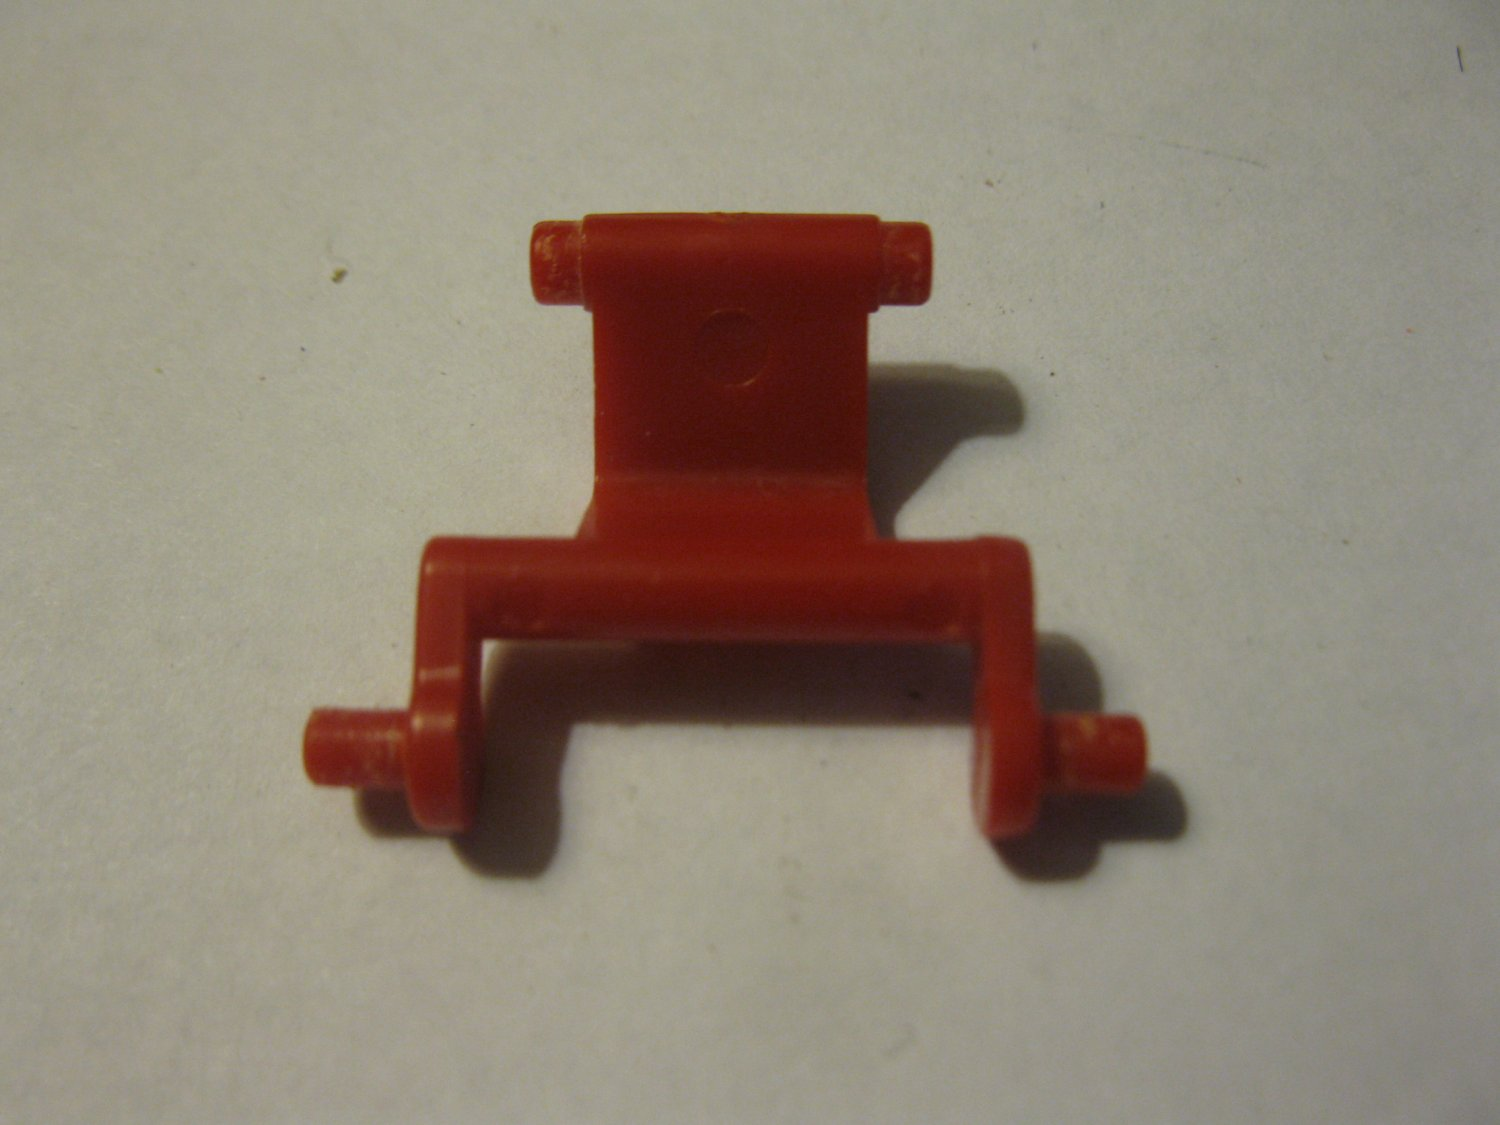 G1 Transformers Action figure part: 1984 Ratchet - Interior Red Hinge Section